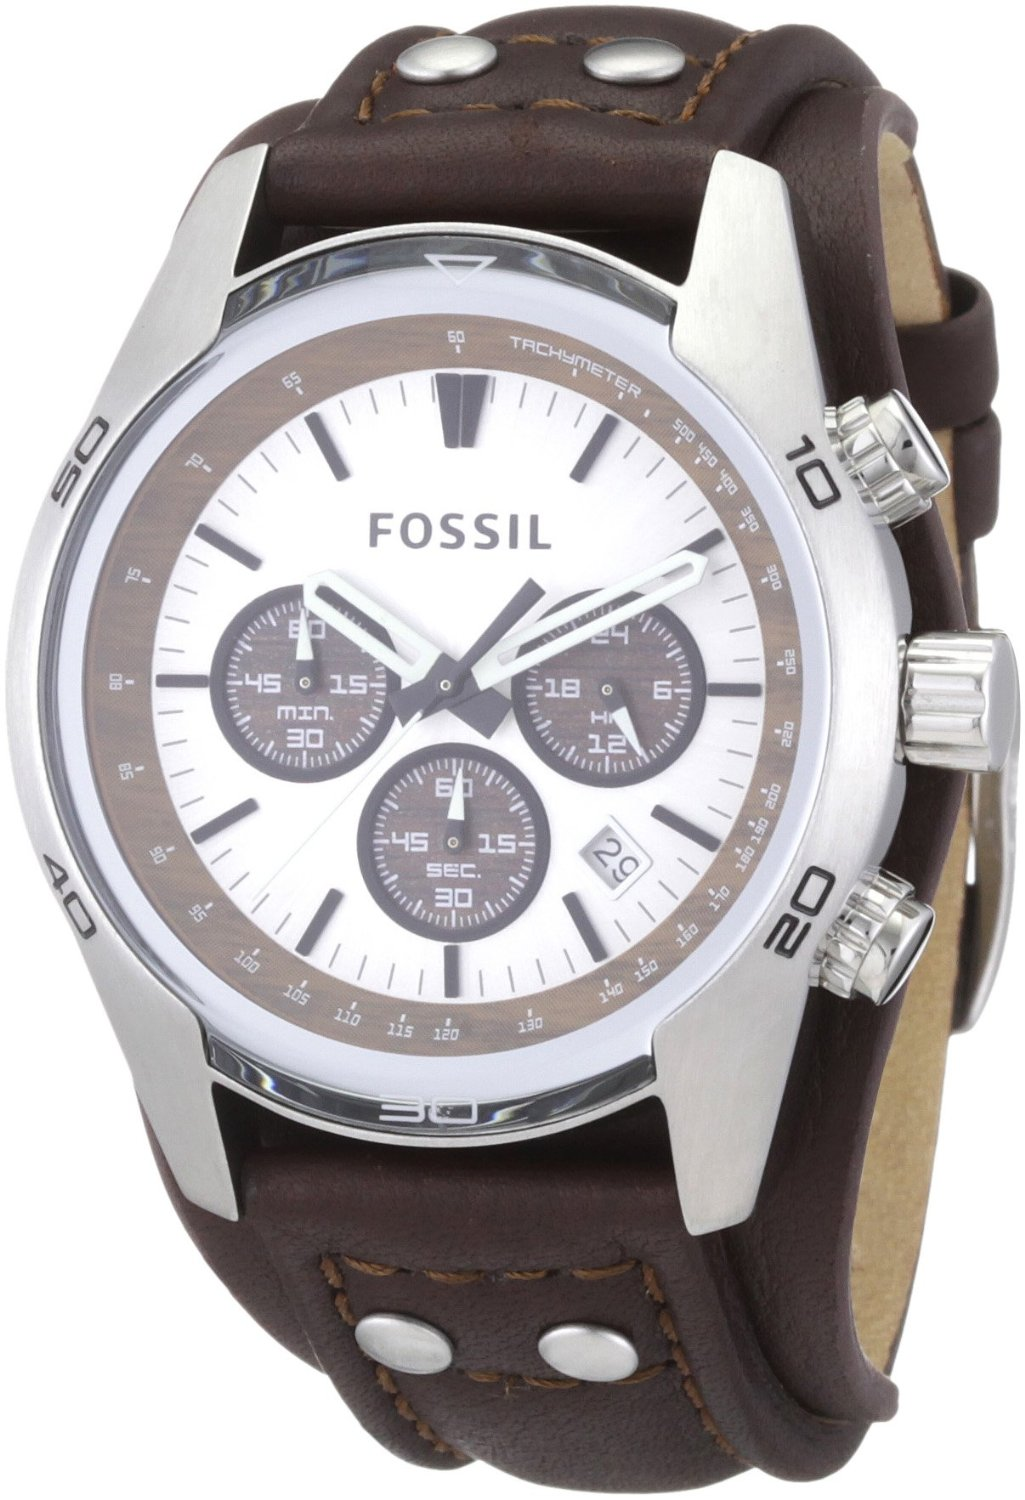 Fossil watches for men: Fossil men39;s Cuff Leather Watch